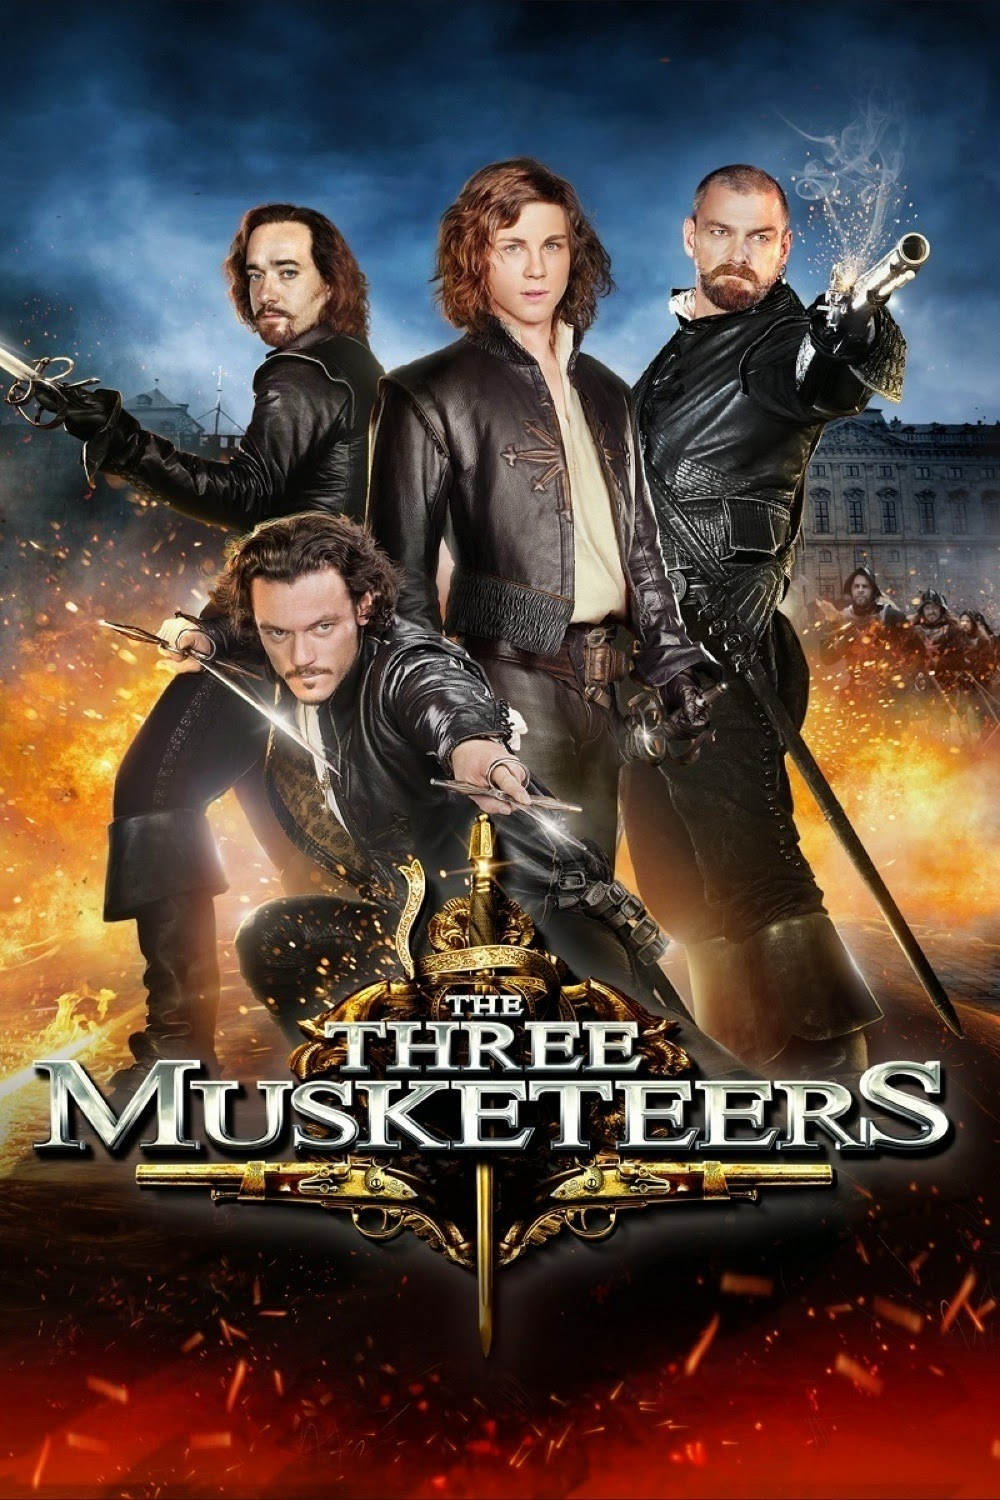 Musketeers 2011 full movie download free full movie download